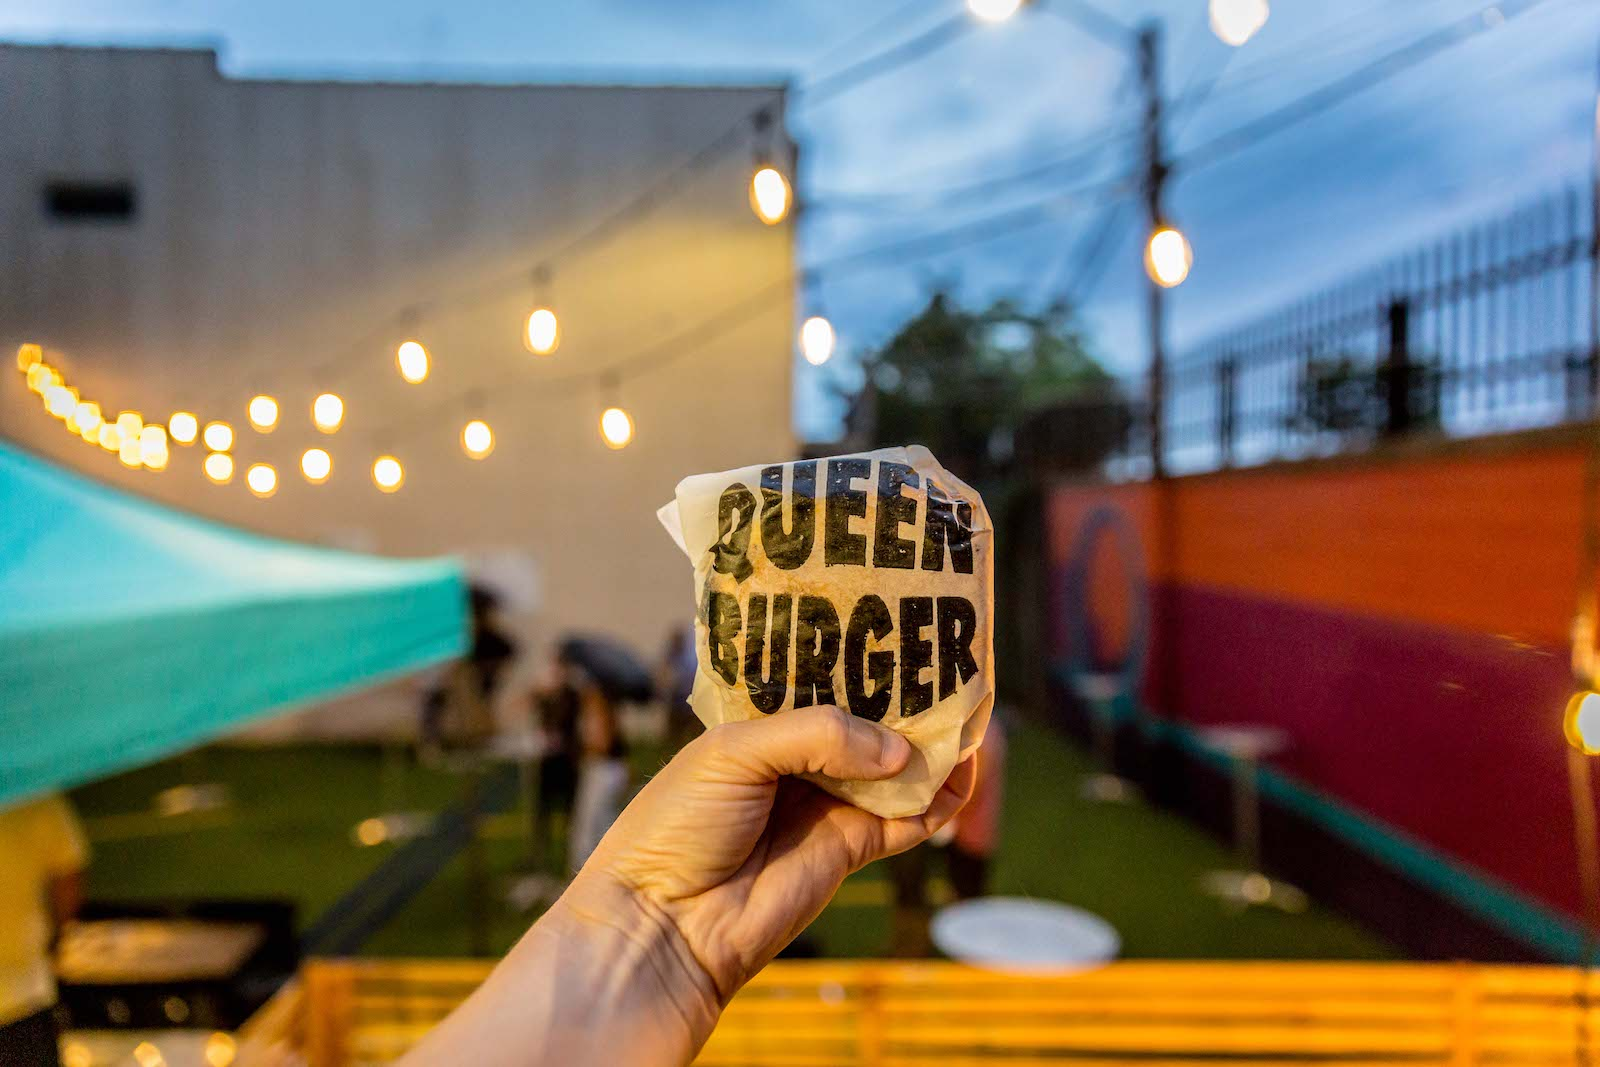 QueenBurger rolled up the Astroturf in August but now it's coming back to a permanent home